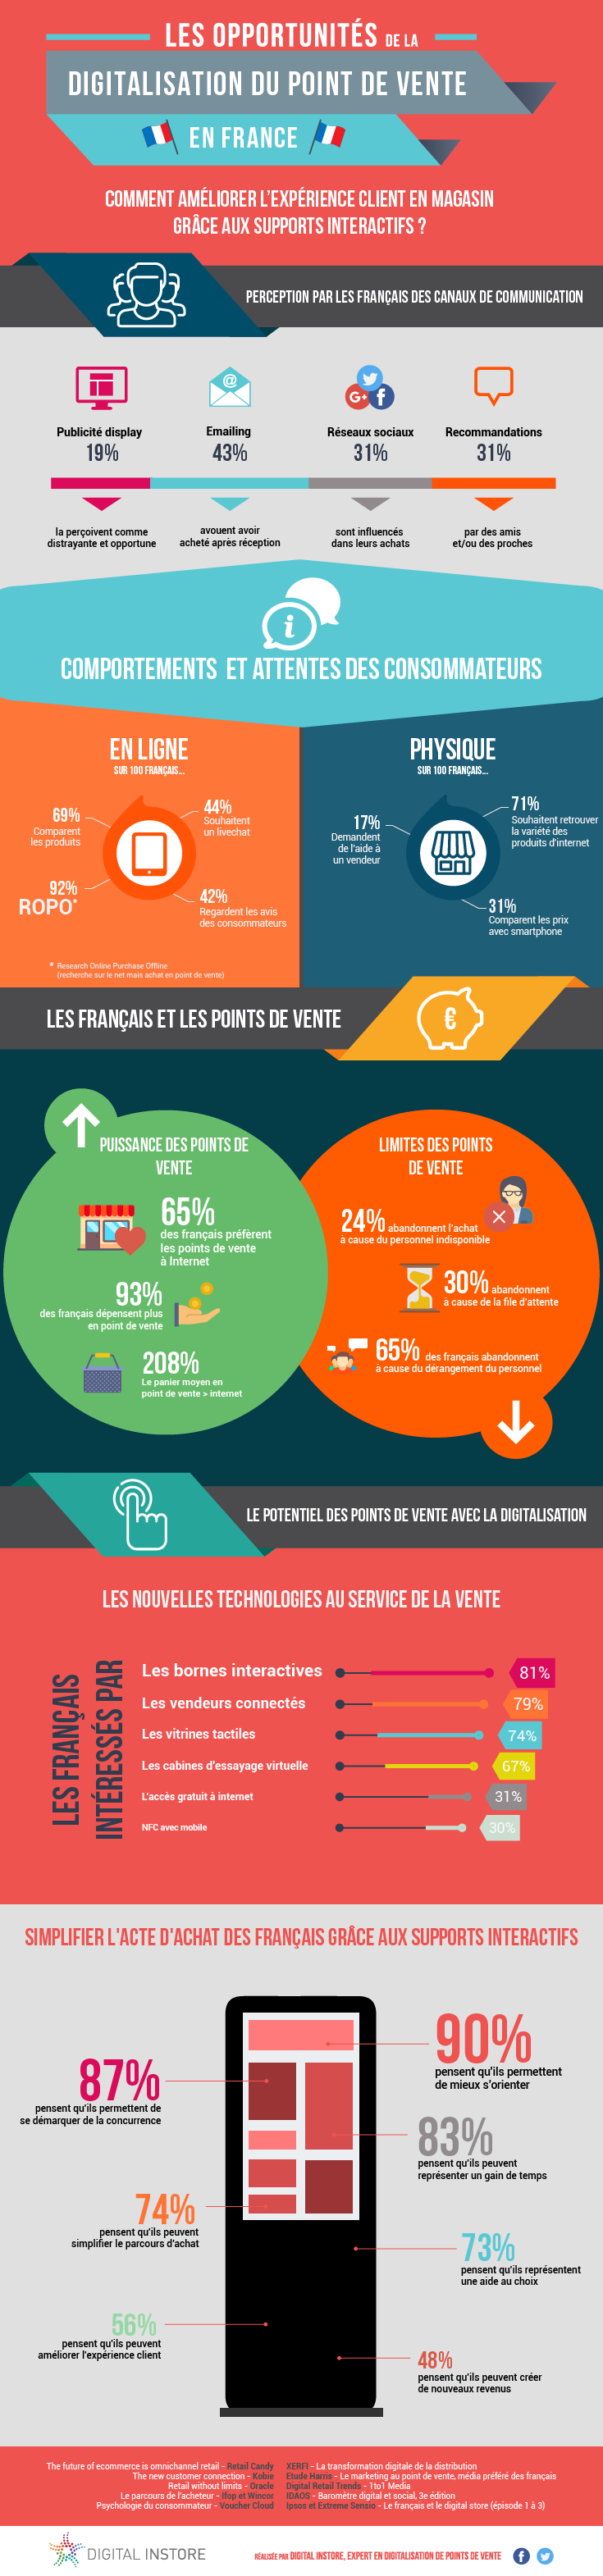 Digitalisation point de vente Infographie